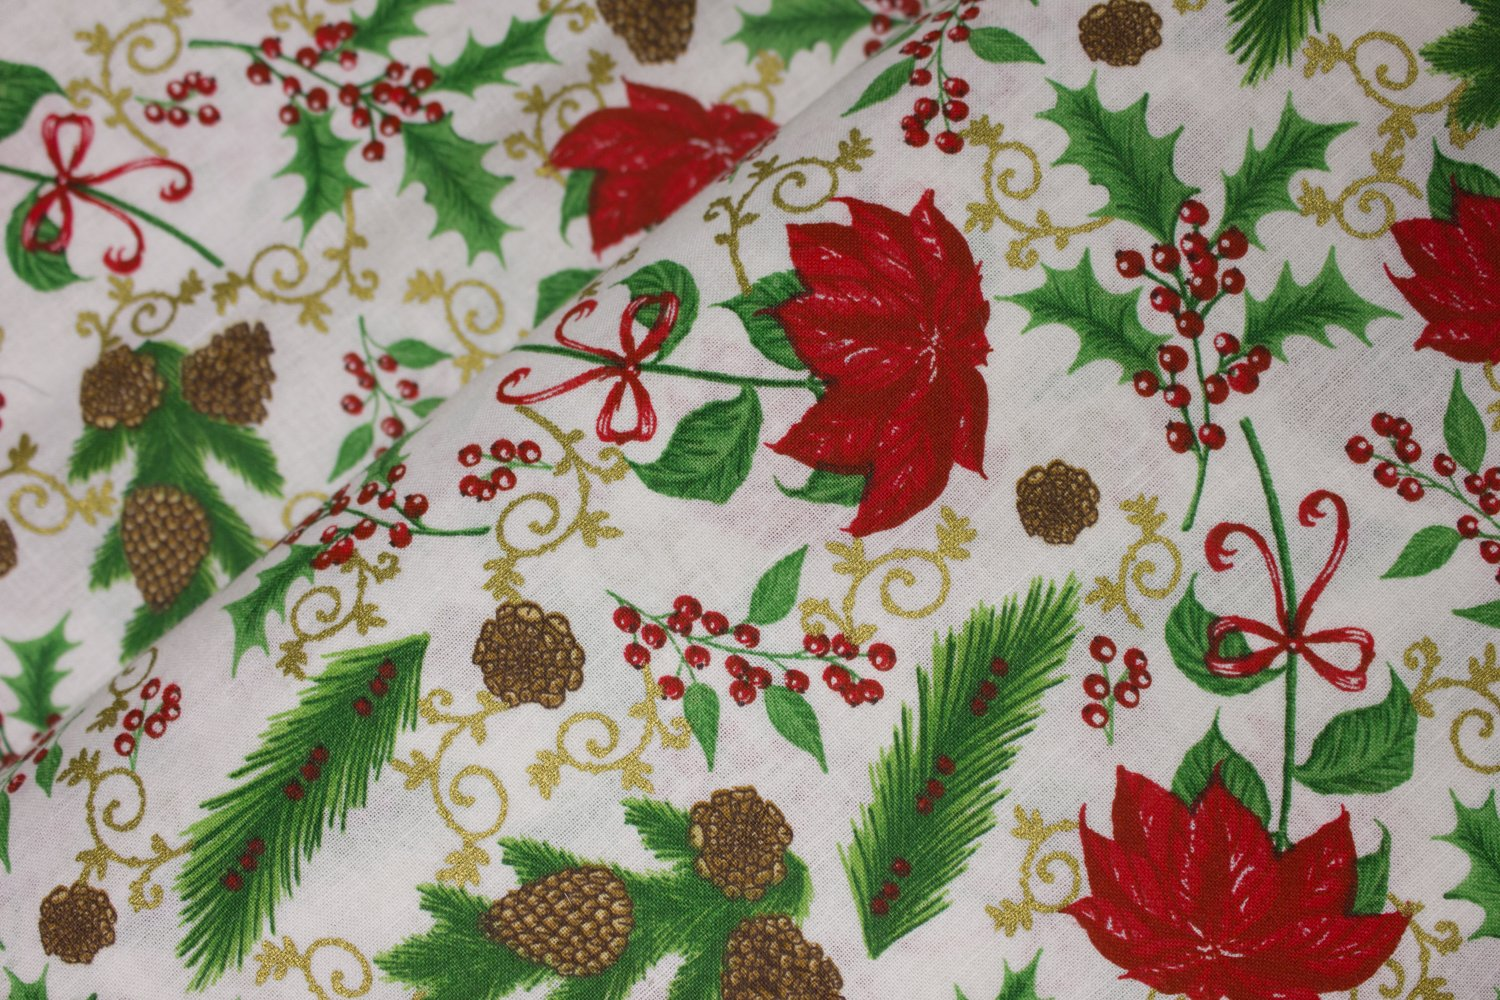 Red Poinsettias, Pinecones, and Holly with Gold Metallic Accents